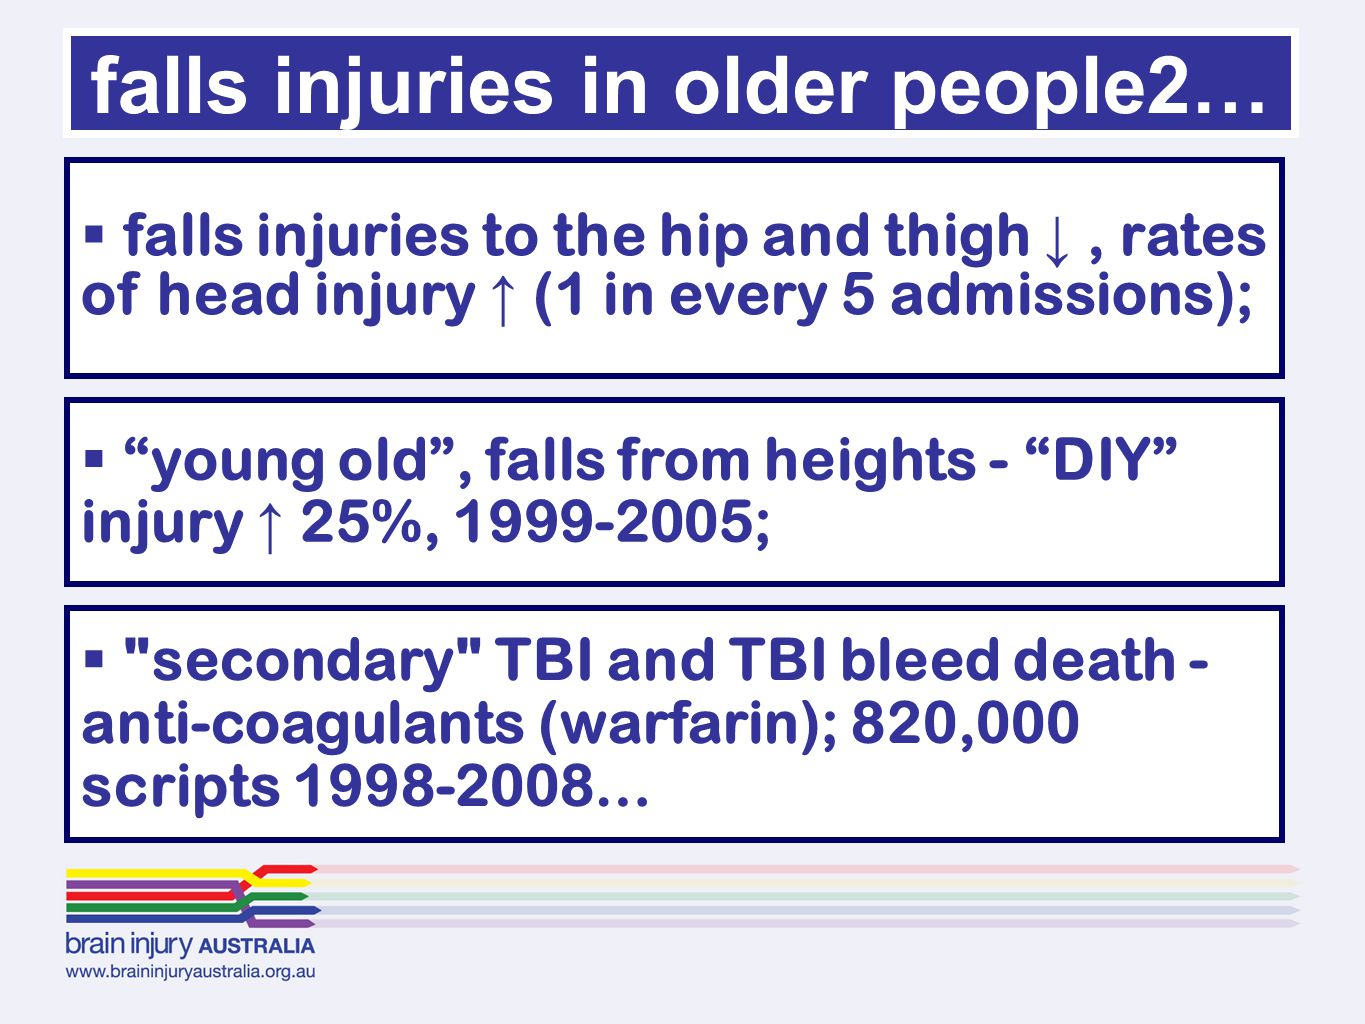  young old , falls from heights - DIY injury ↑ 25%, 1999-2005;  falls injuries to the hip and thigh ↓, rates of head injury ↑ (1 in every 5 admissions);  secondary TBI and TBI bleed death - anti-coagulants (warfarin); 820,000 scripts 1998-2008… falls injuries in older people2…